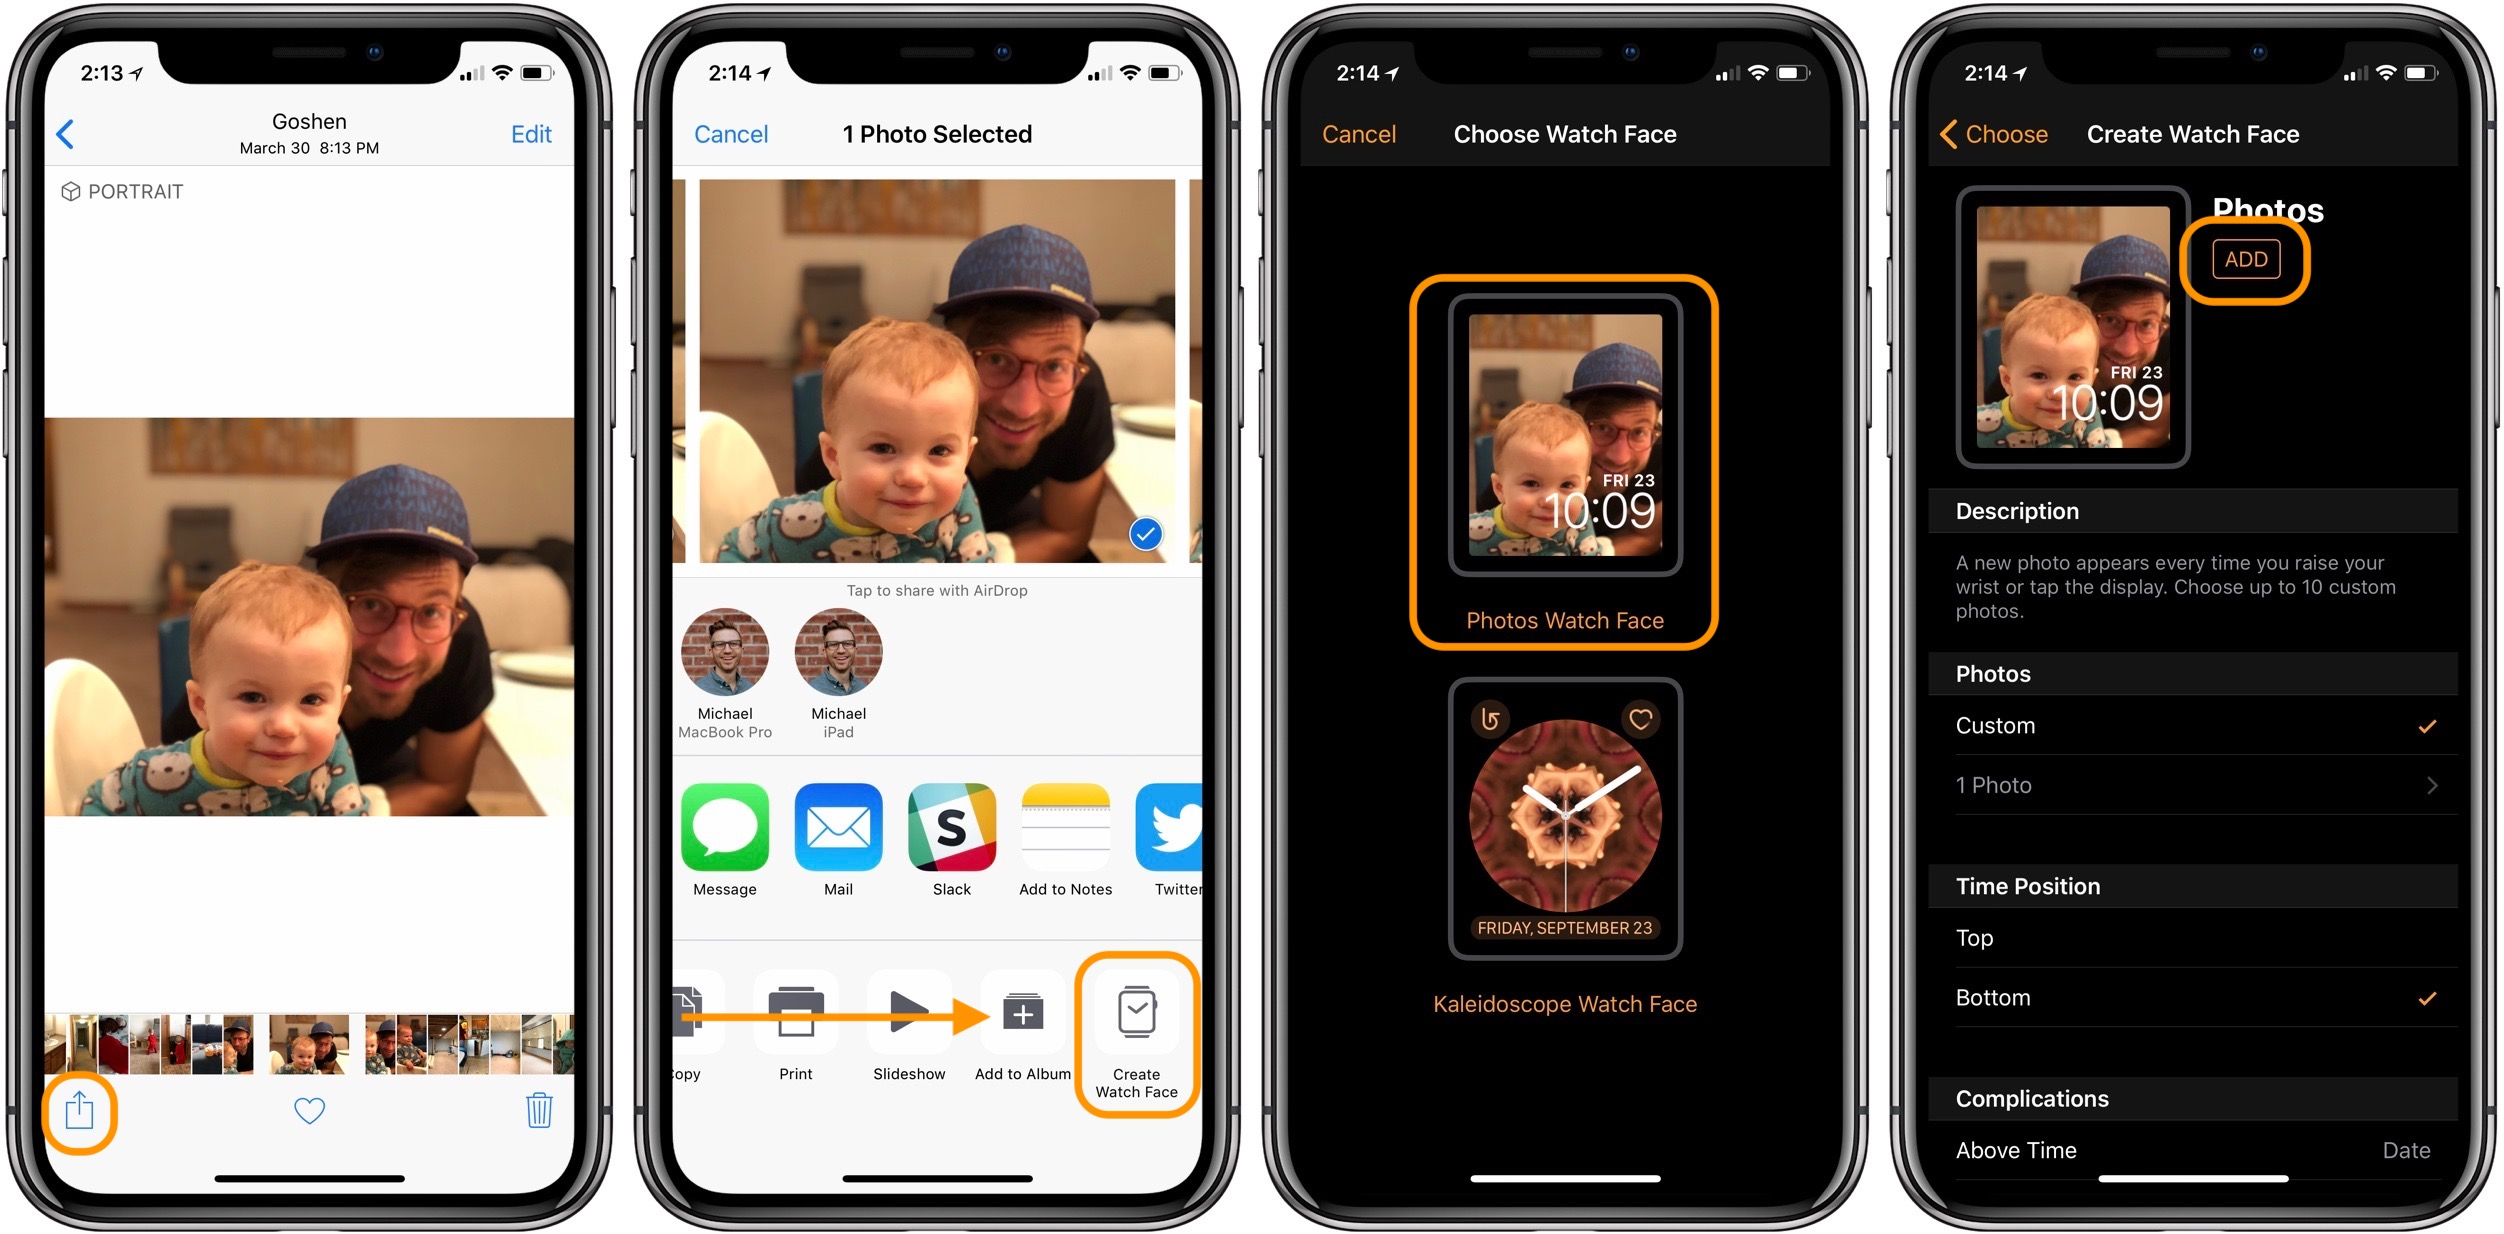 Apple Watch: How to set photo as watch face - 9to5Mac